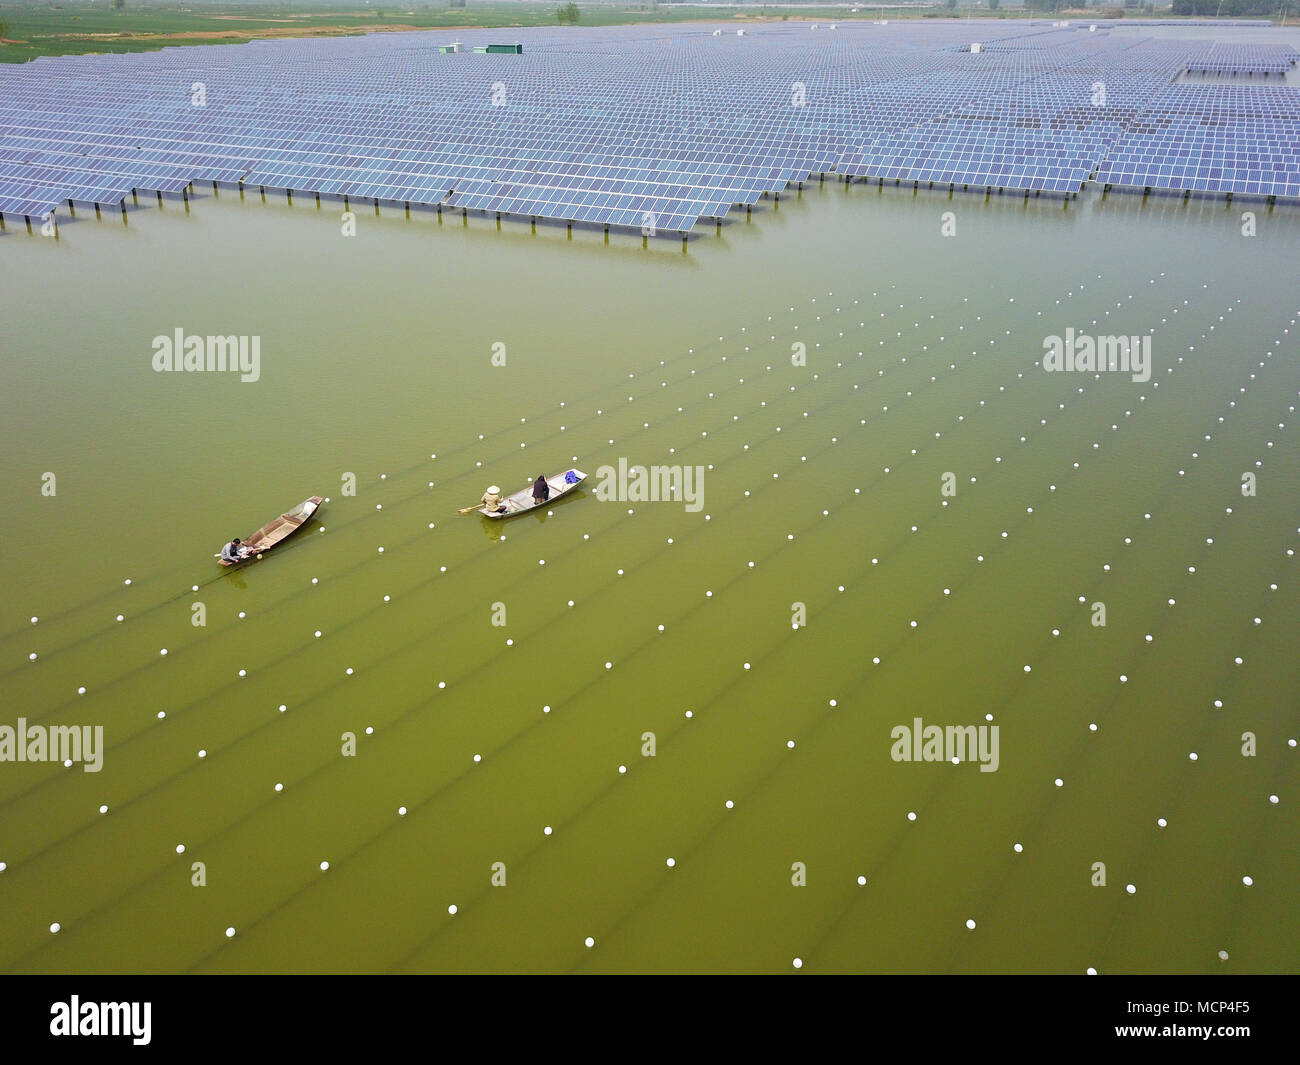 Aerial Photo Taken On April 17 2018 Shows People Working At A Pearl Farm In The Reservoir Installed With Solar Panels Weiying Town Of Sihong County